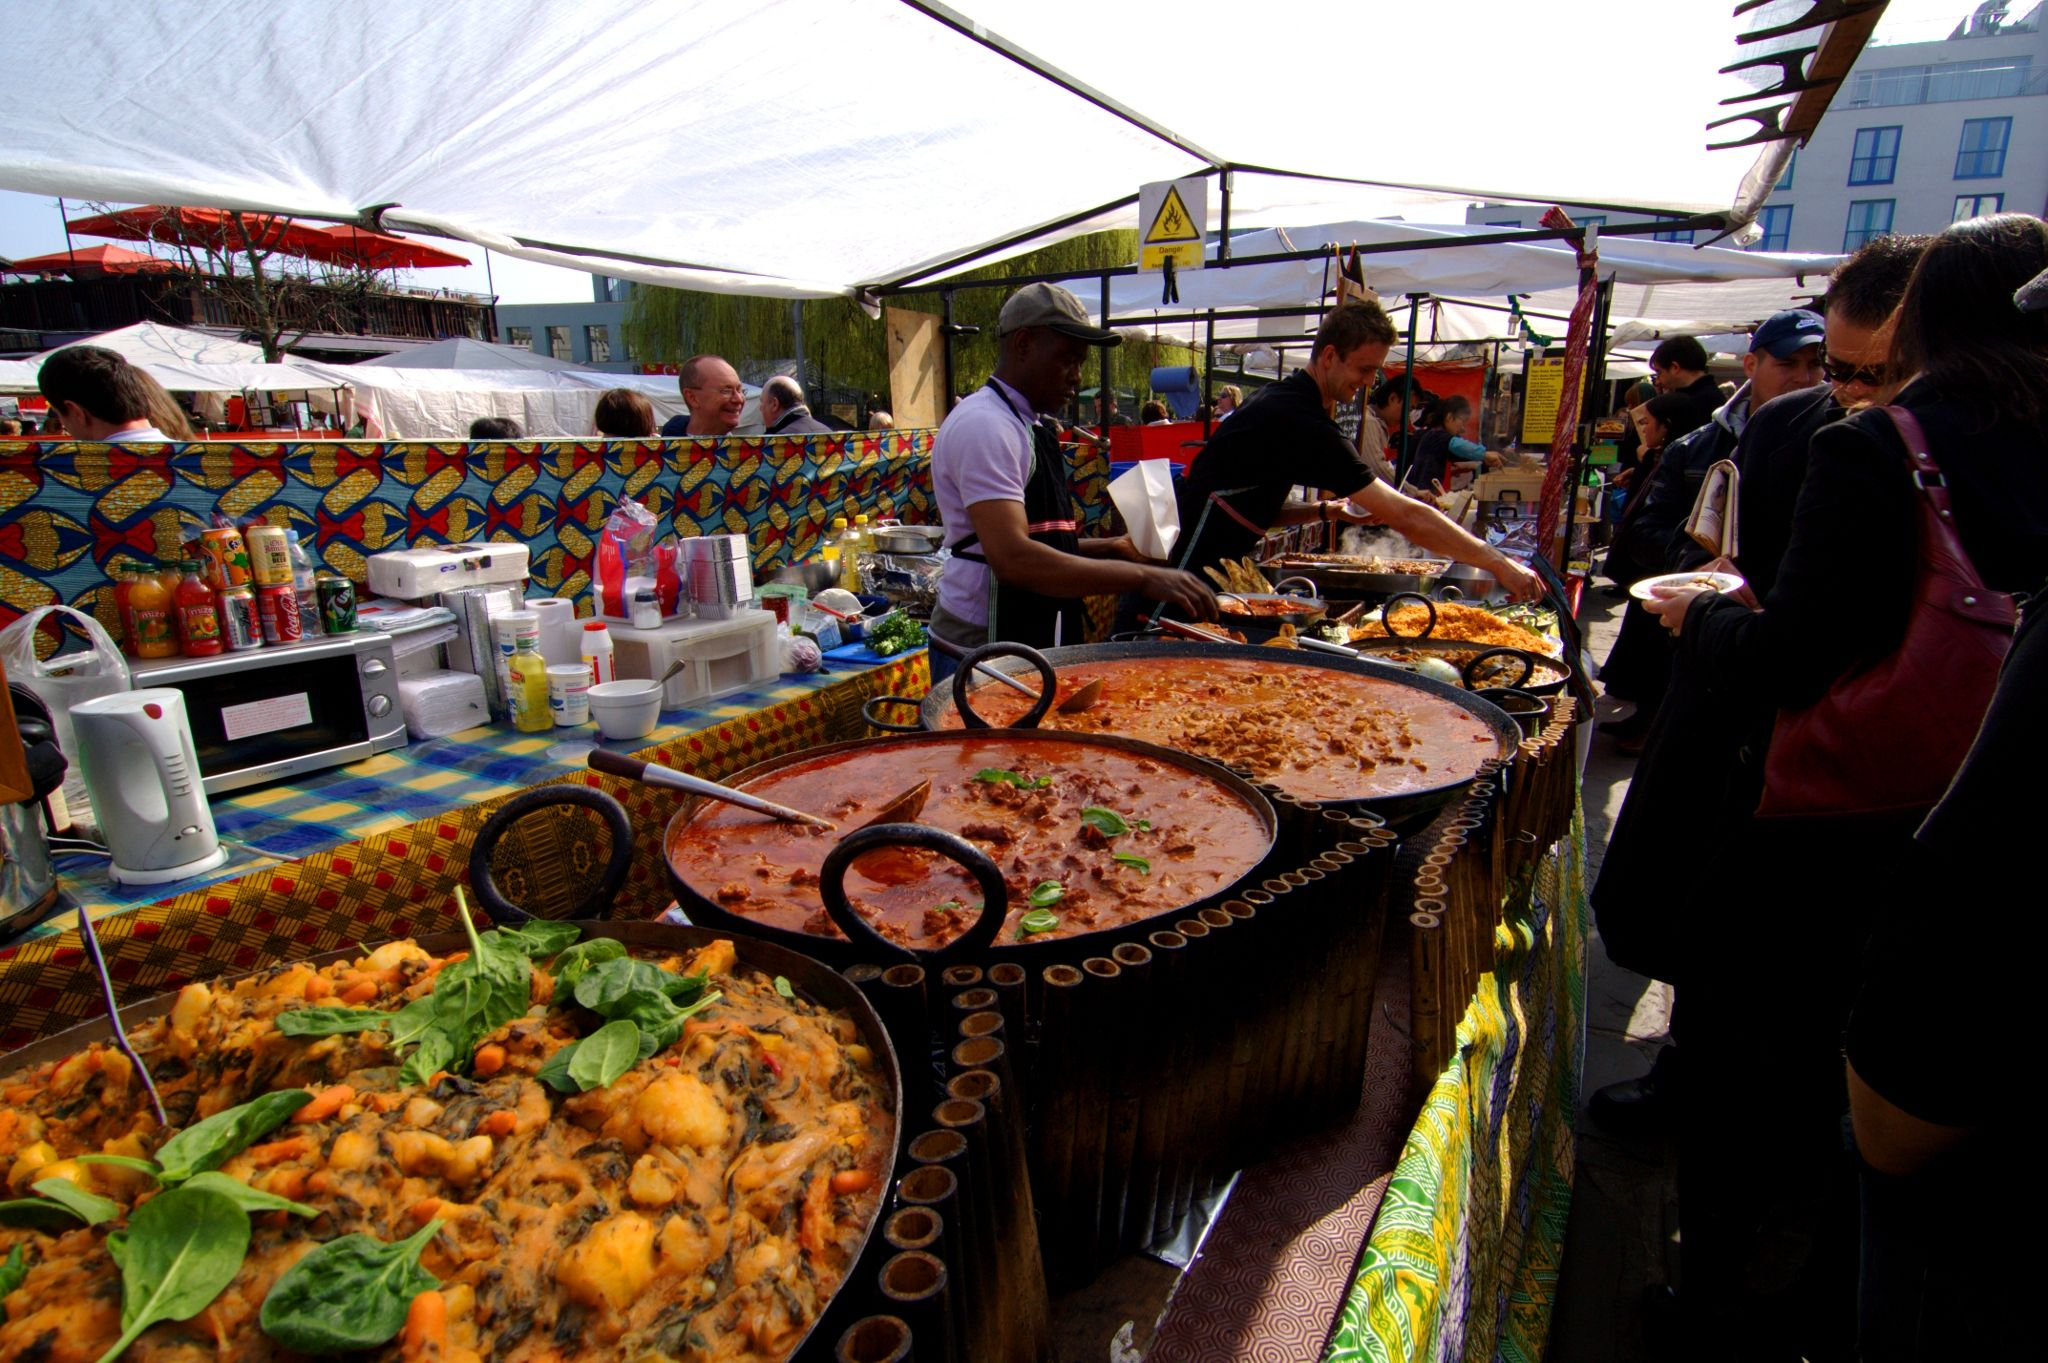 Camden Town Porno west african food stall in camden town | west african food